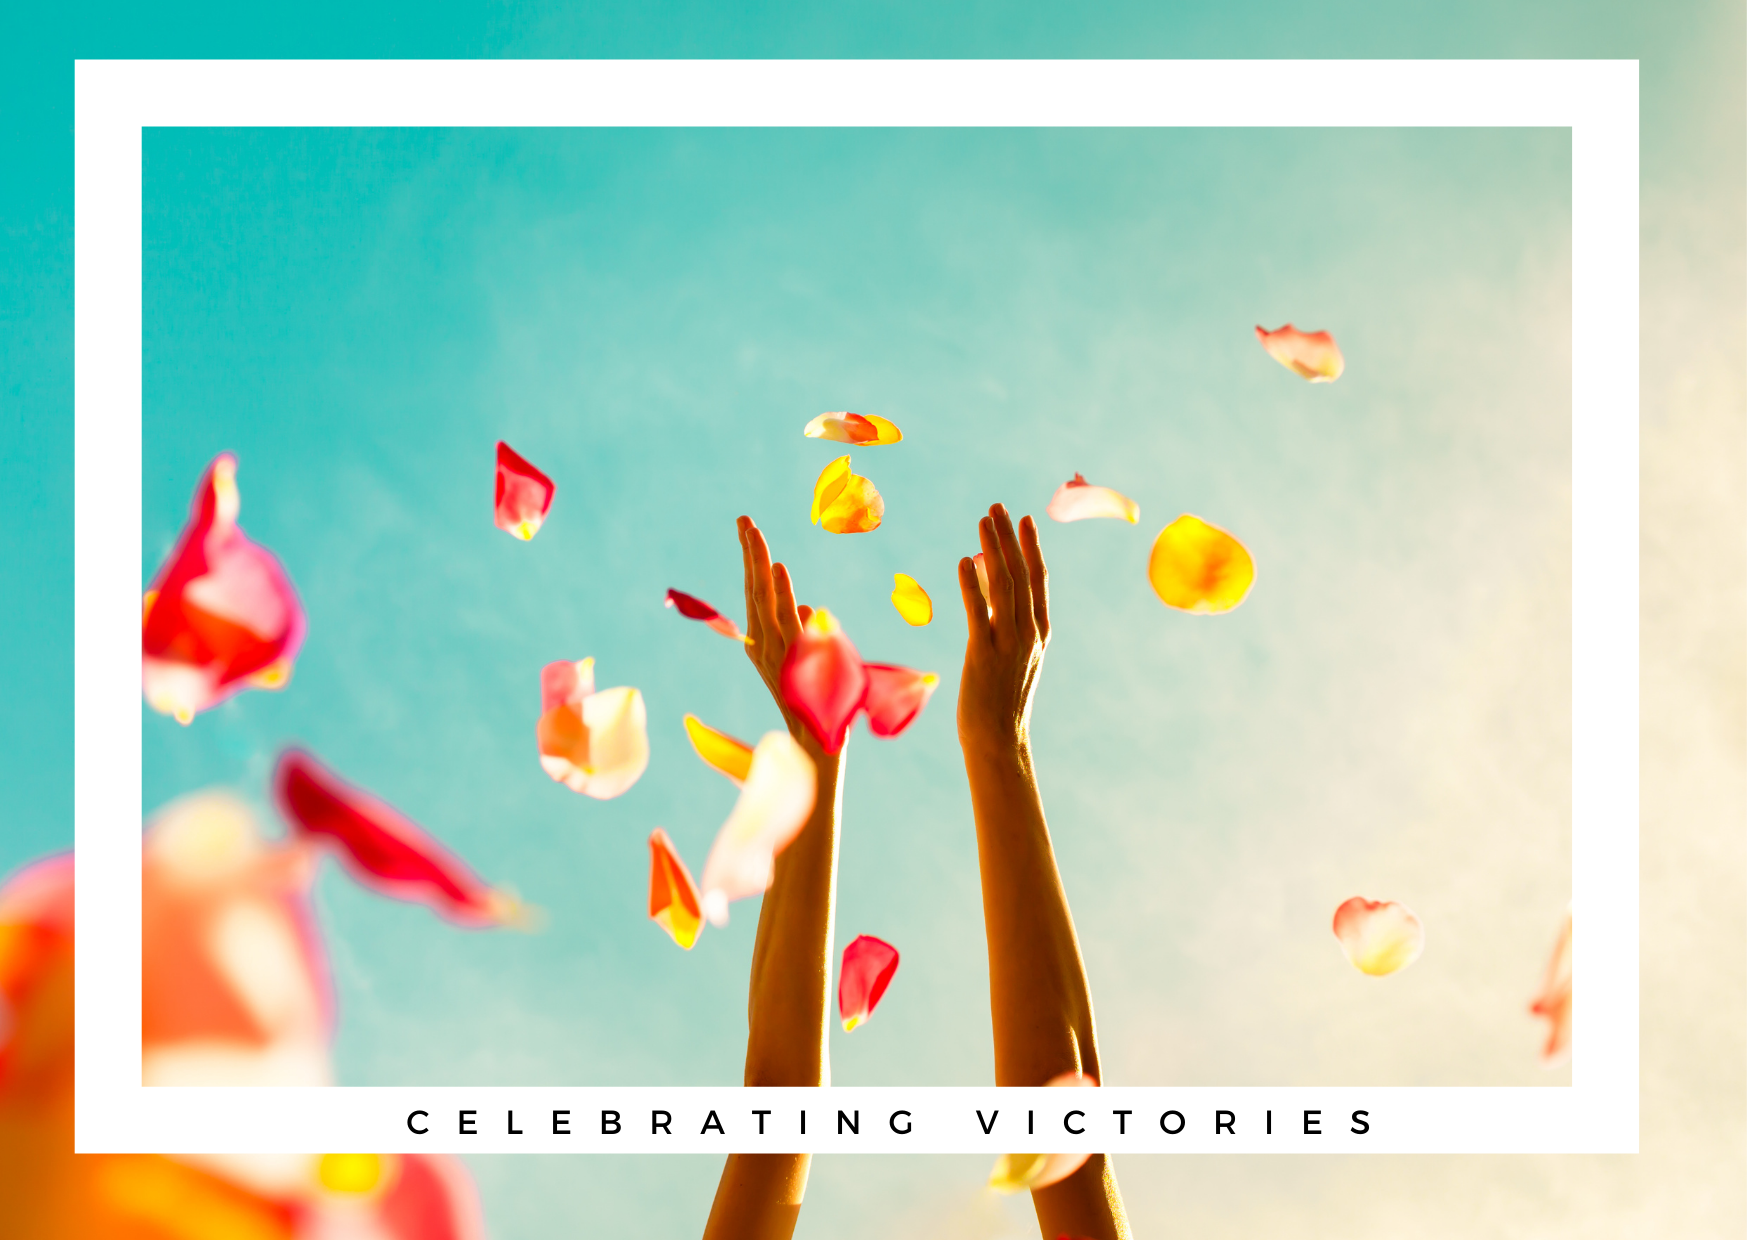 Celebrating small victories.... A personal message from us to you